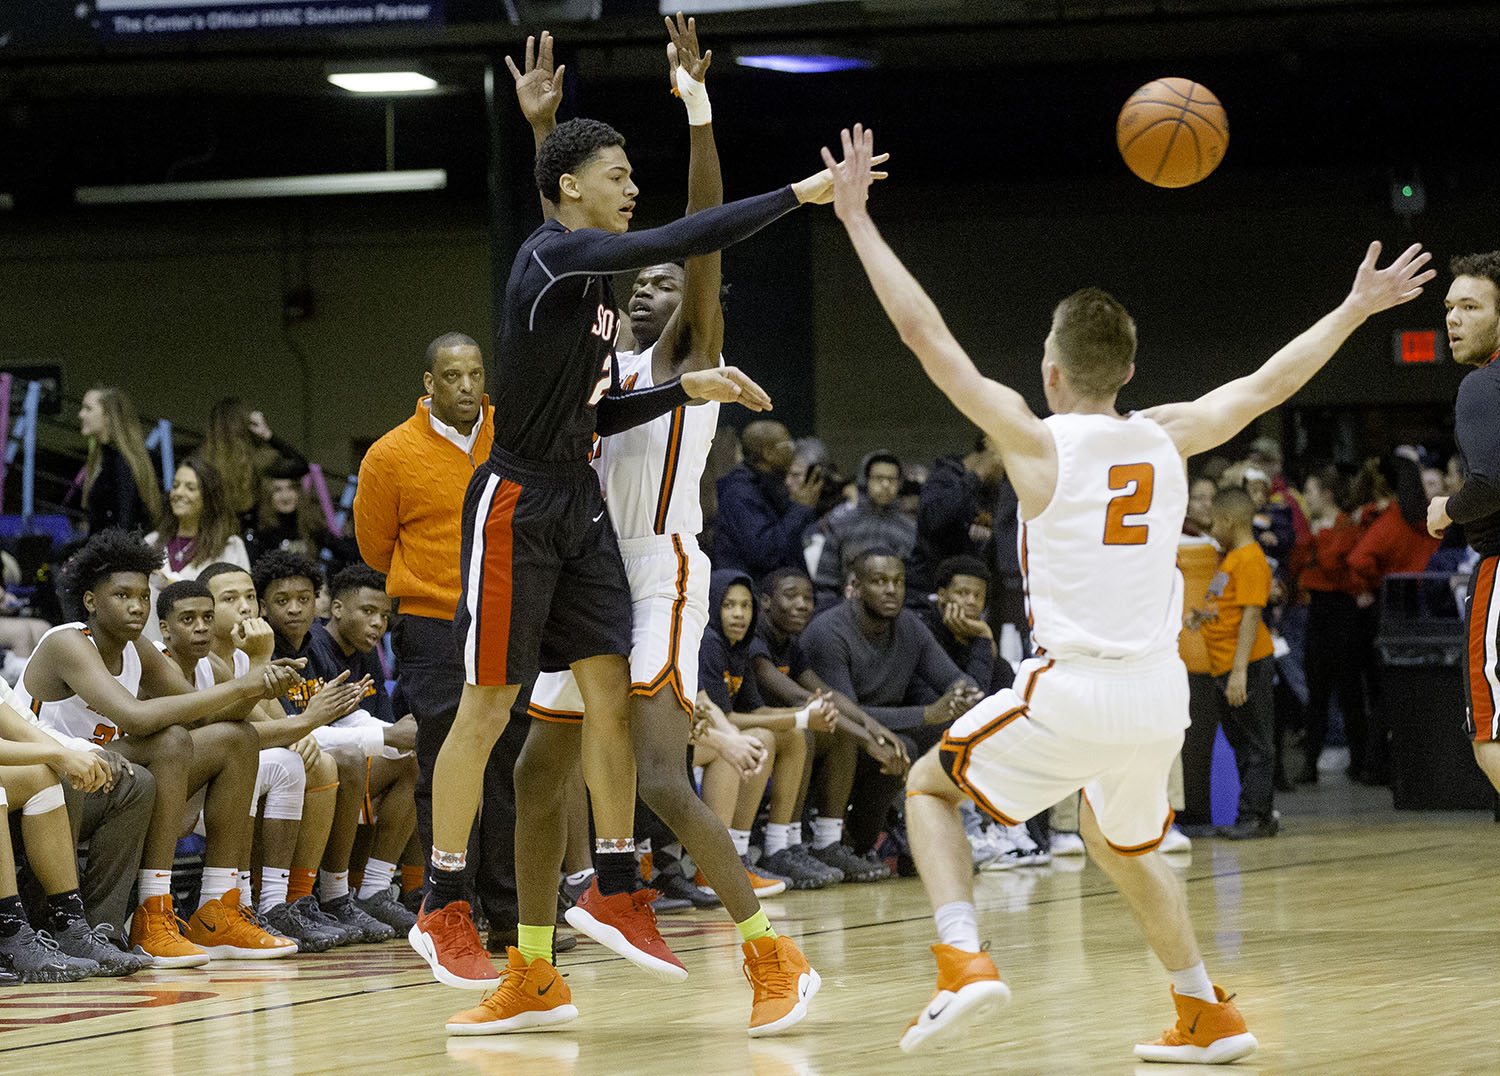 Springfield's Bennie Slater passes the ball out of double Lanphier coverage during the Boys City Tournament at the Bank of Springfield Center Friday, Jan. 18, 2019.  [Ted Schurter/The State Journal-Register]